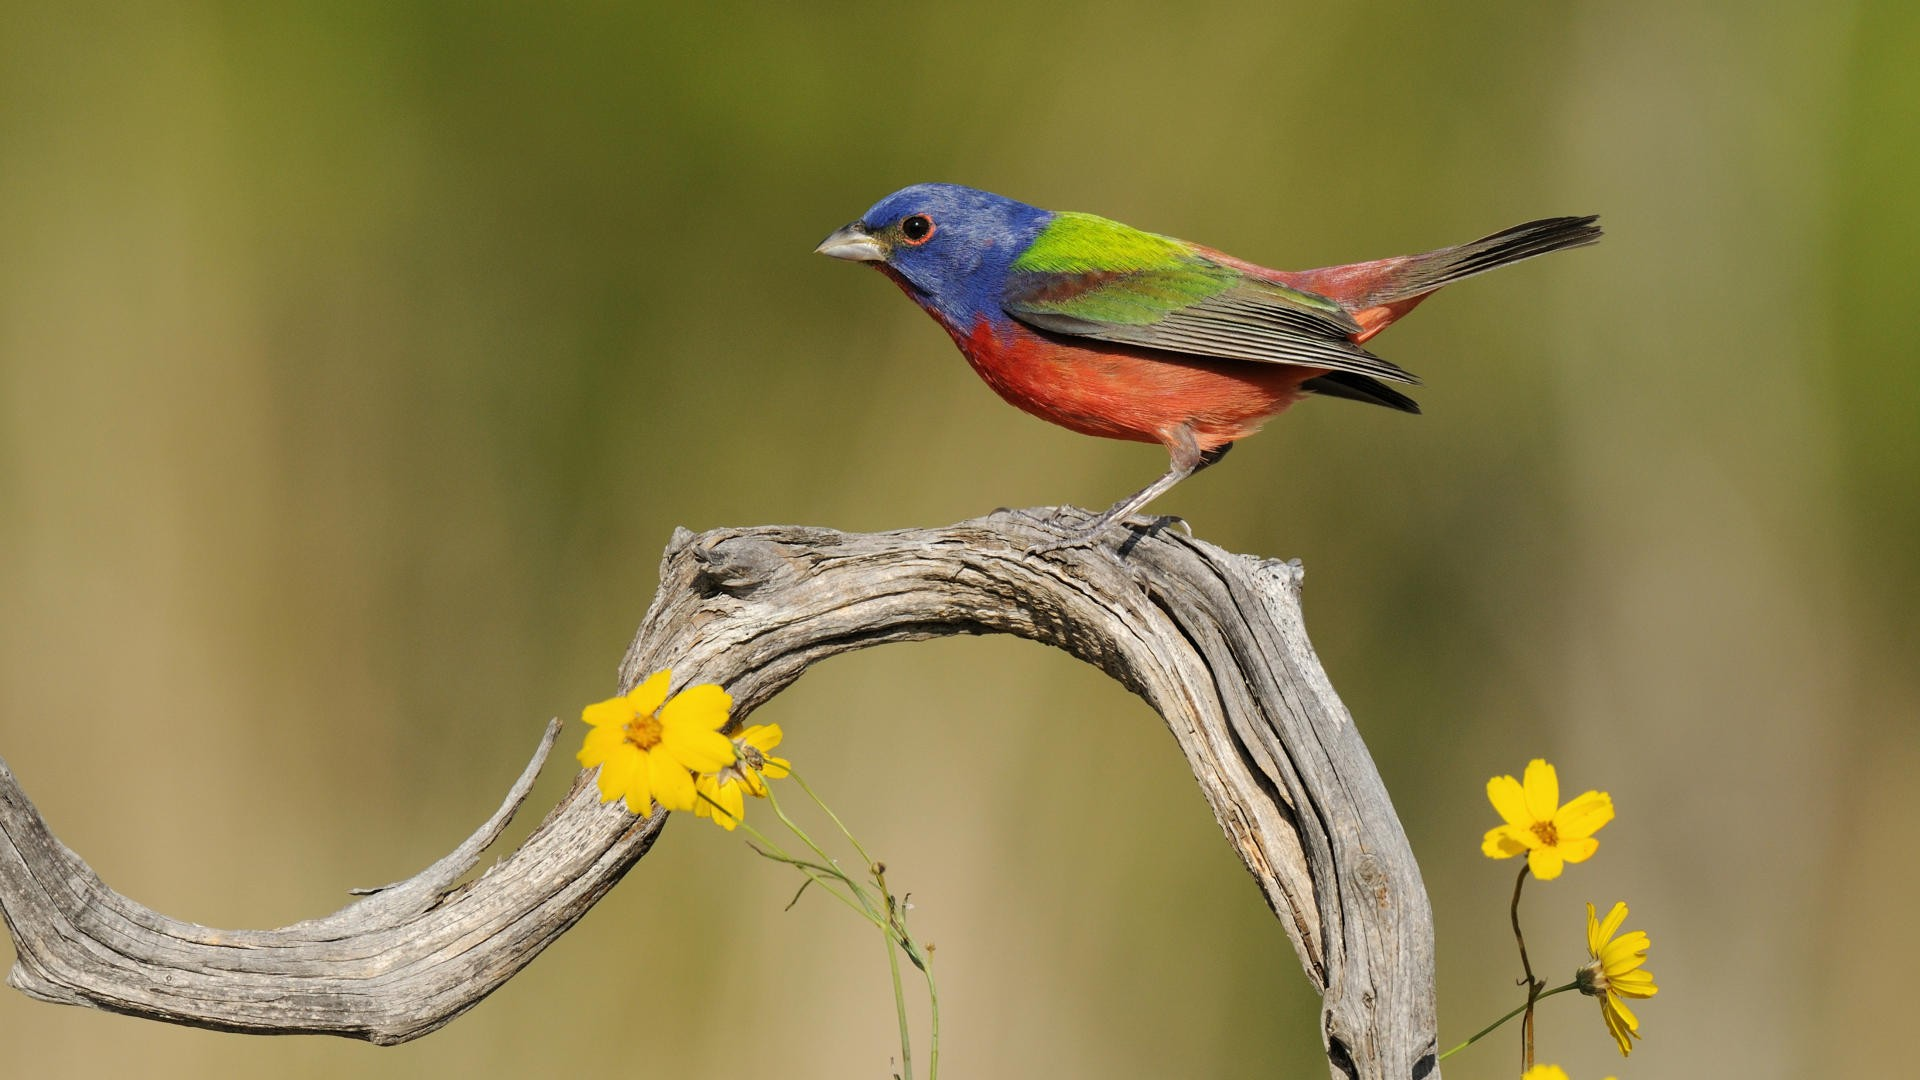 Very beautiful and colorful bird